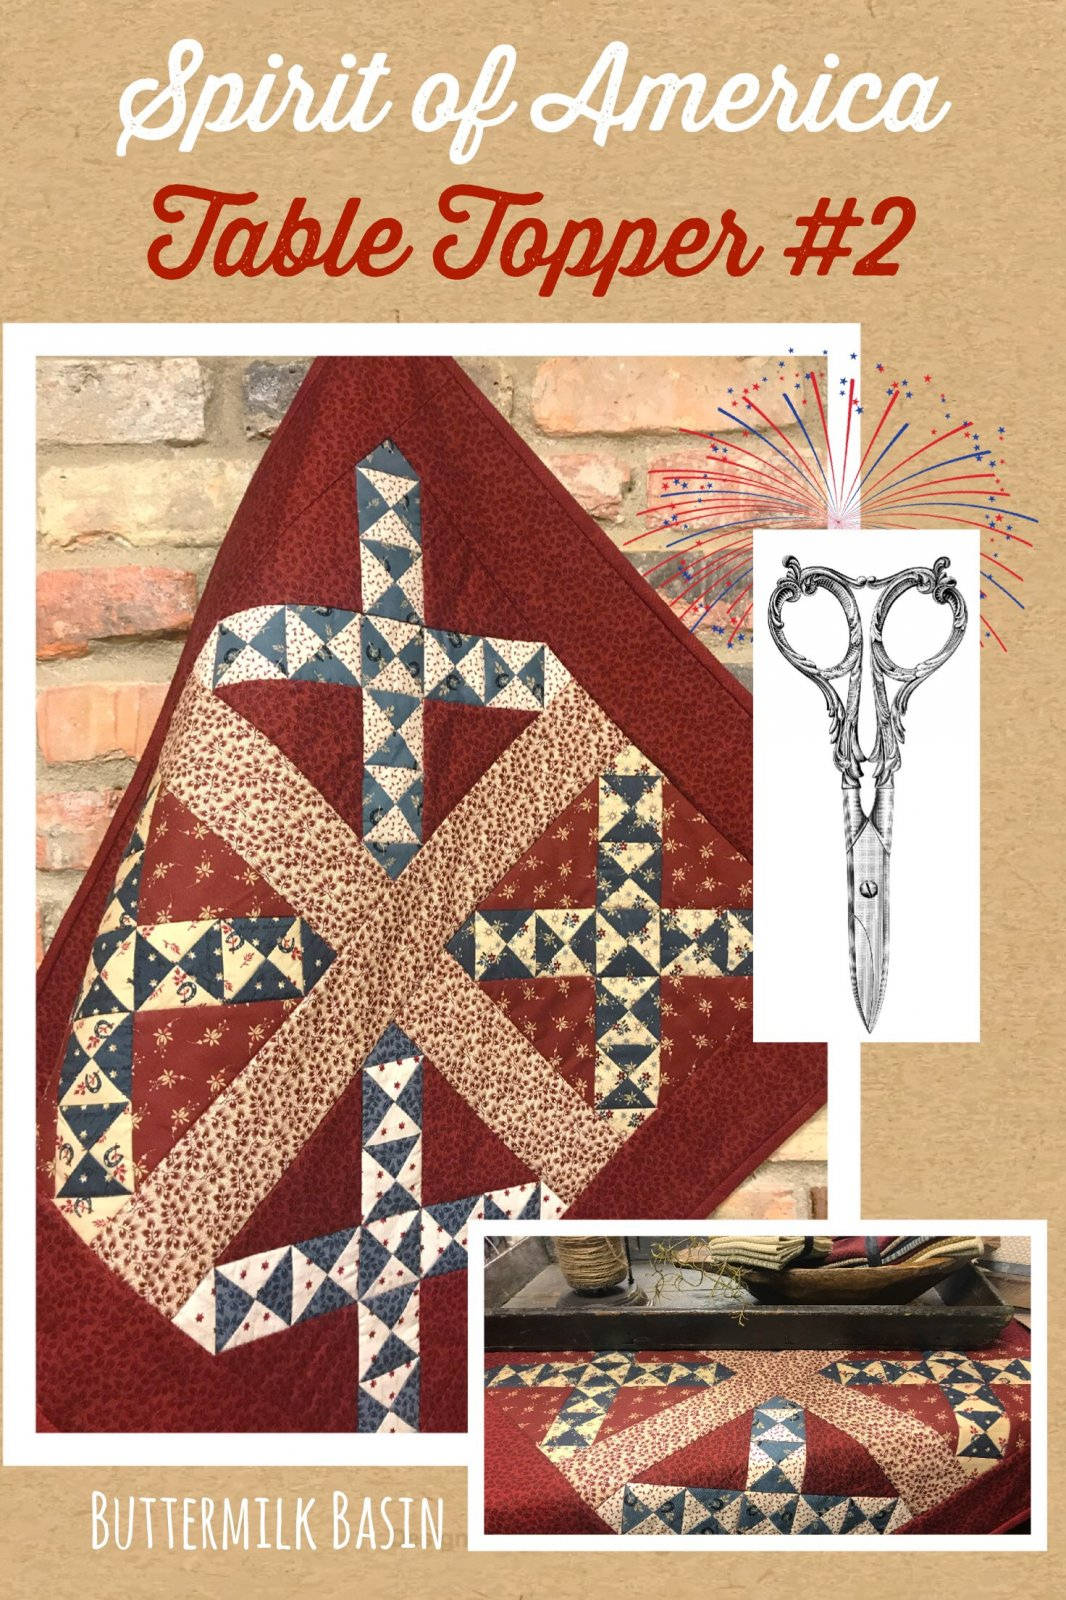 Spirit of America Table Topper #2 Pattern and Kit